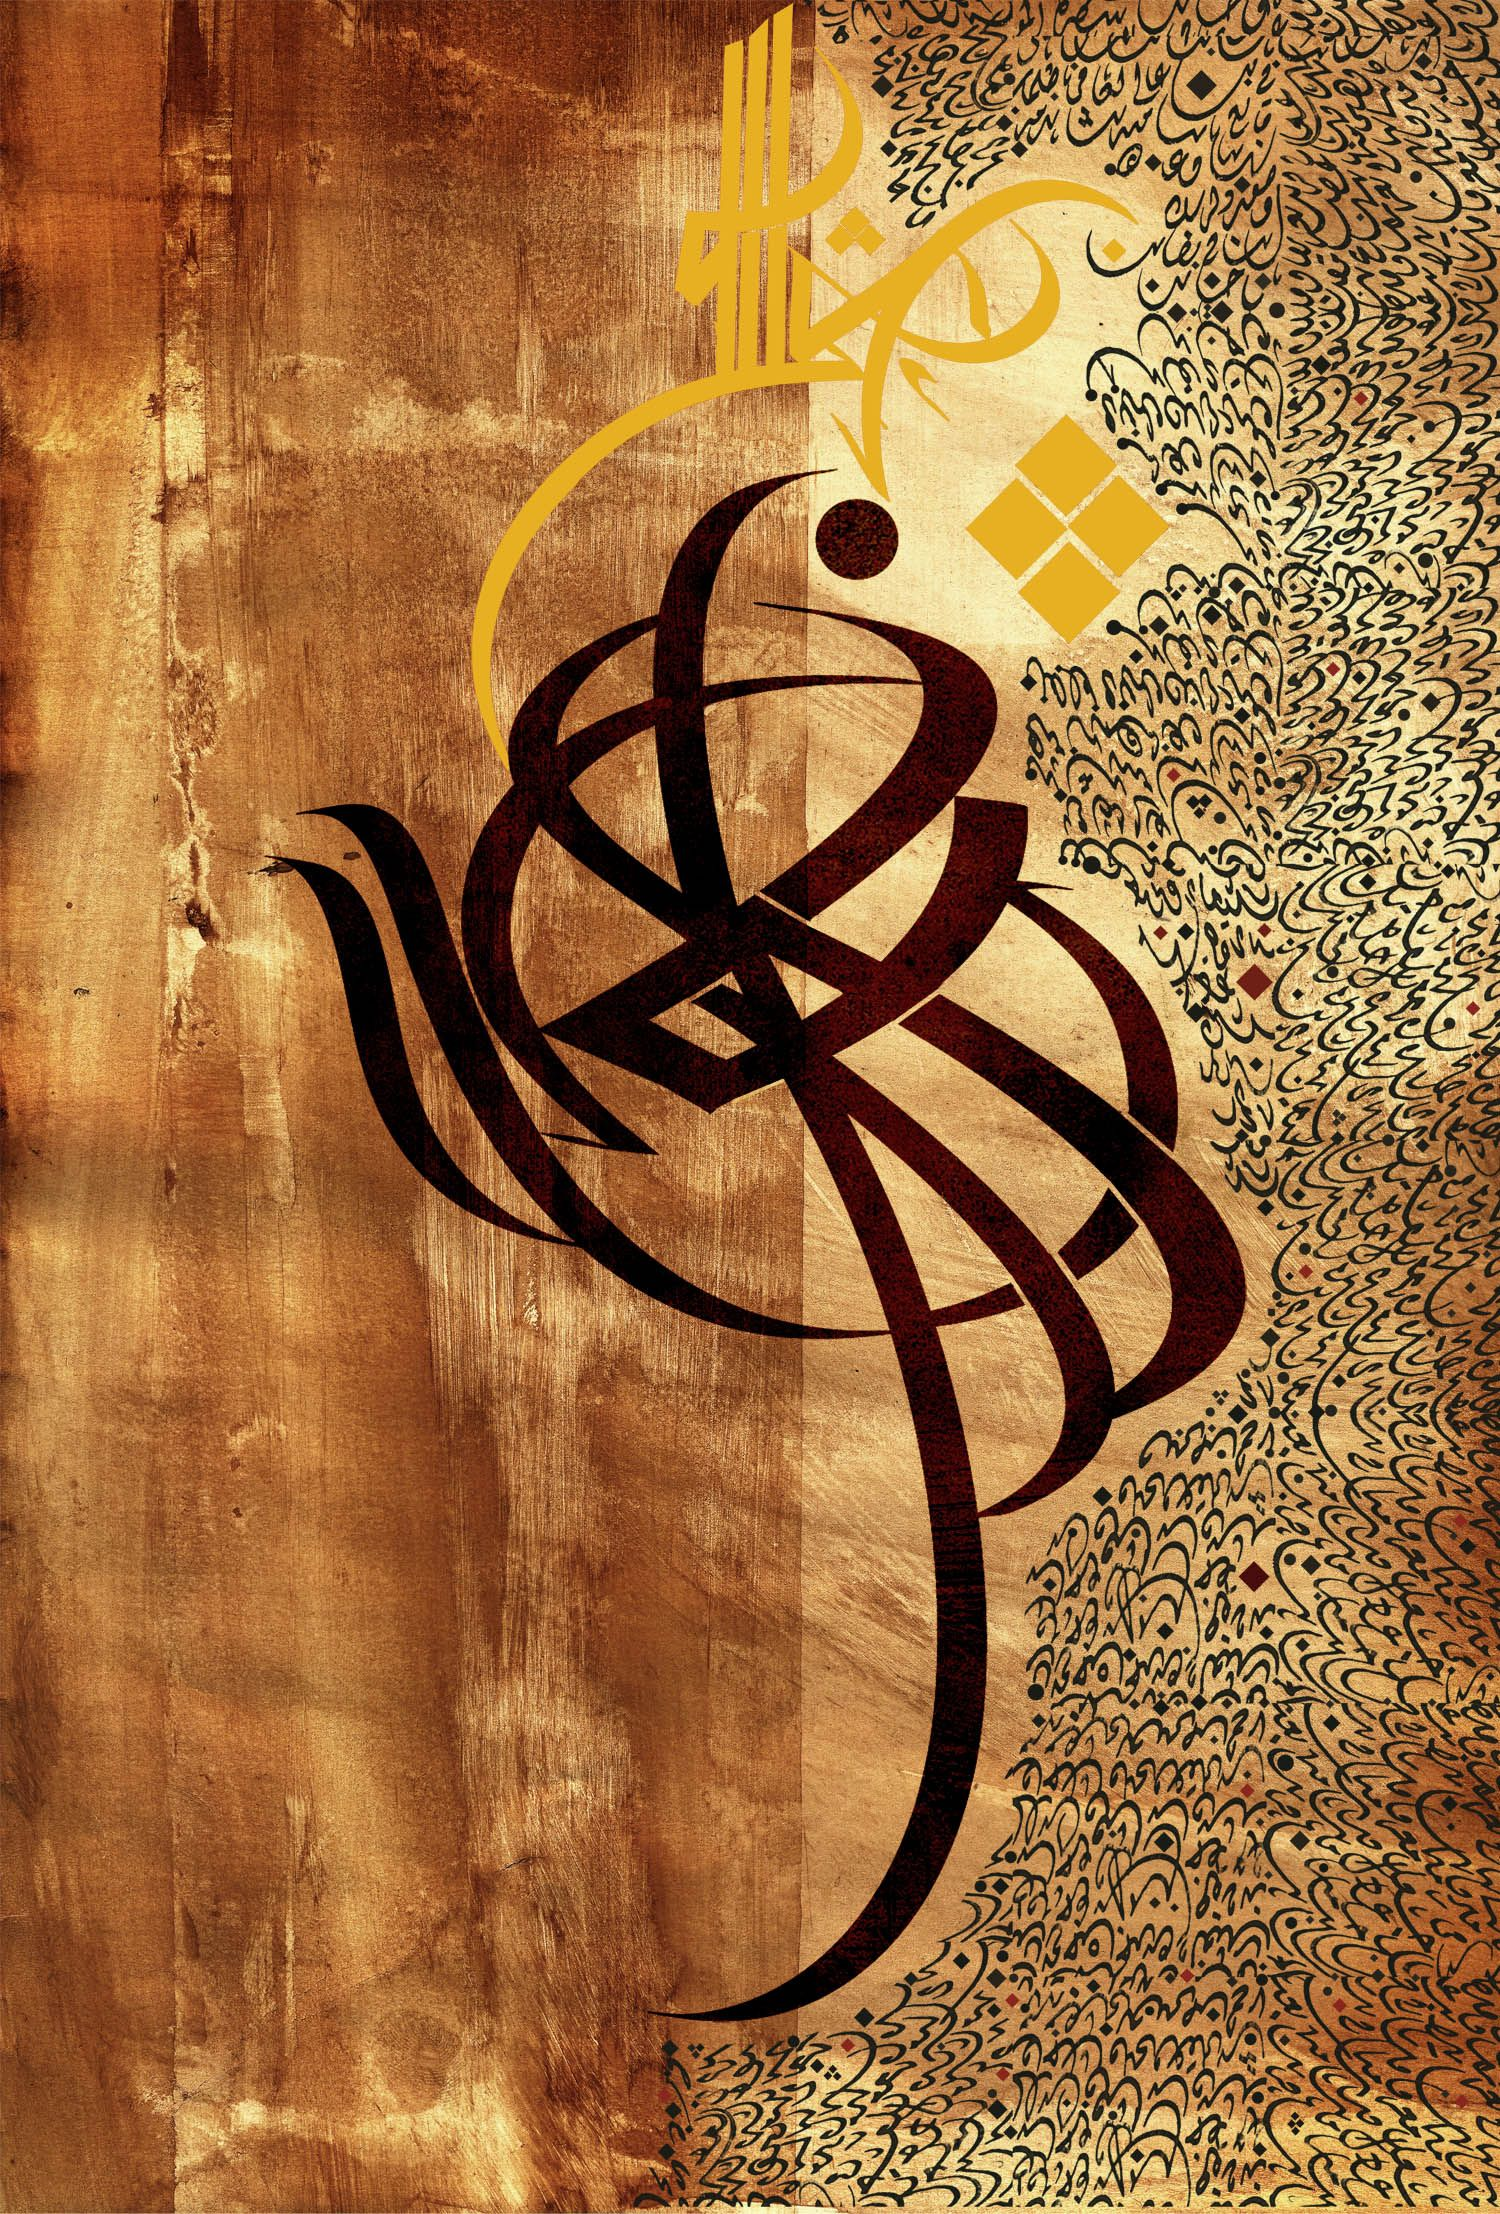 Arabic calligraphy google search islamic art and Arabic calligraphy wall art